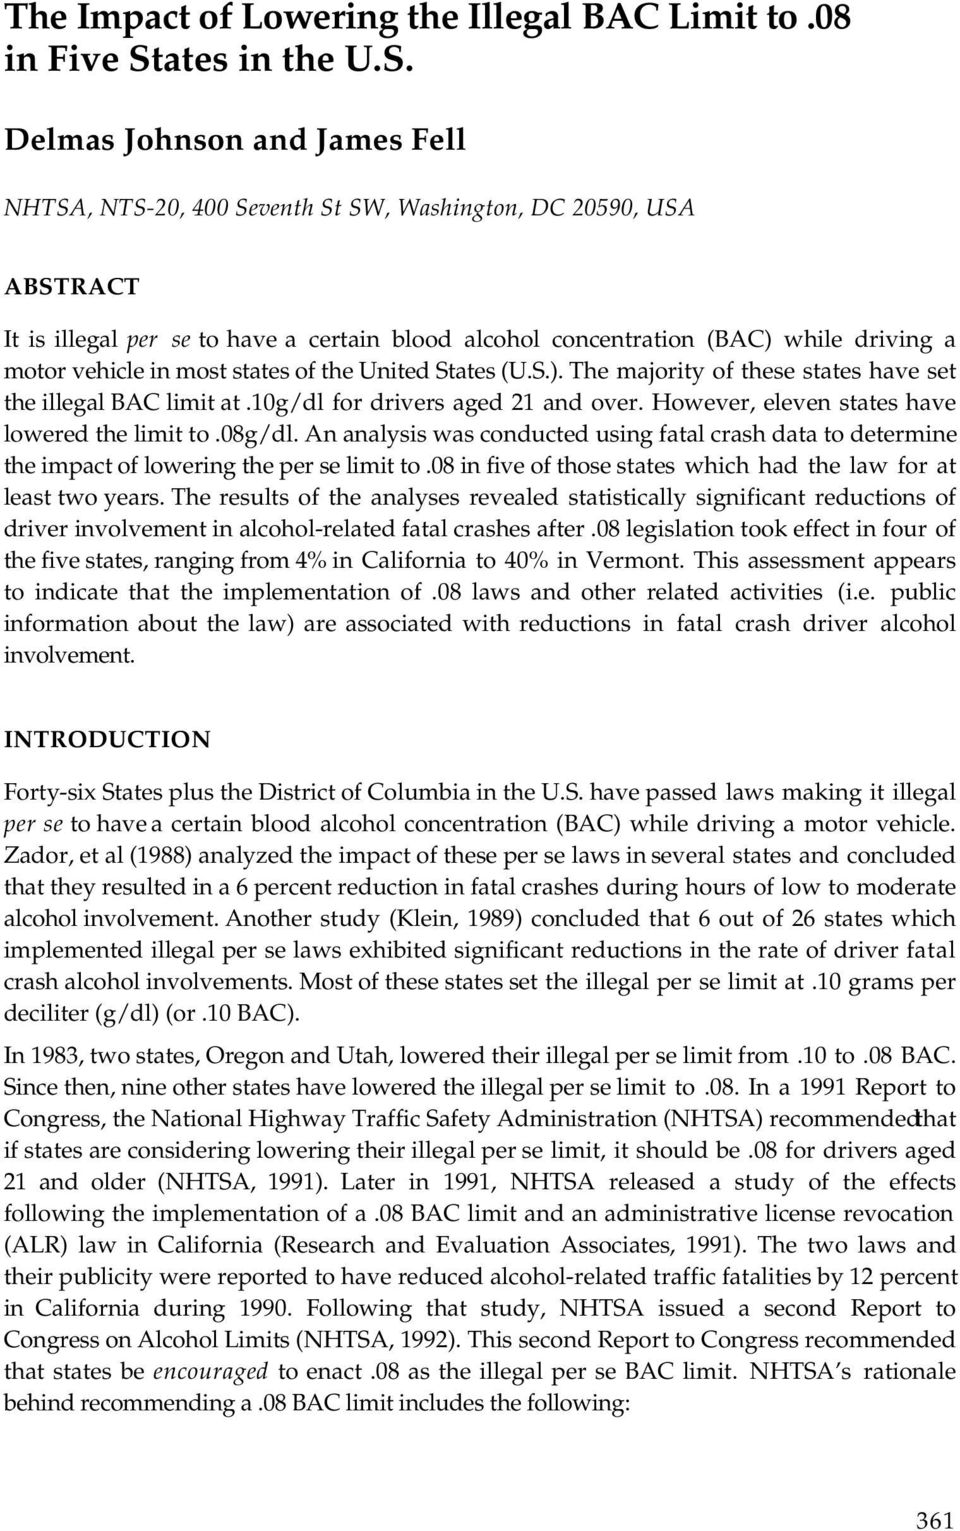 Delmas Johnson and James Fell NHTSA, NTS-20, 400 Seventh St SW, Washington, DC 20590, USA ABSTRACT It is illegal per se to have a certain blood alcohol concentration (BAC) while driving a motor